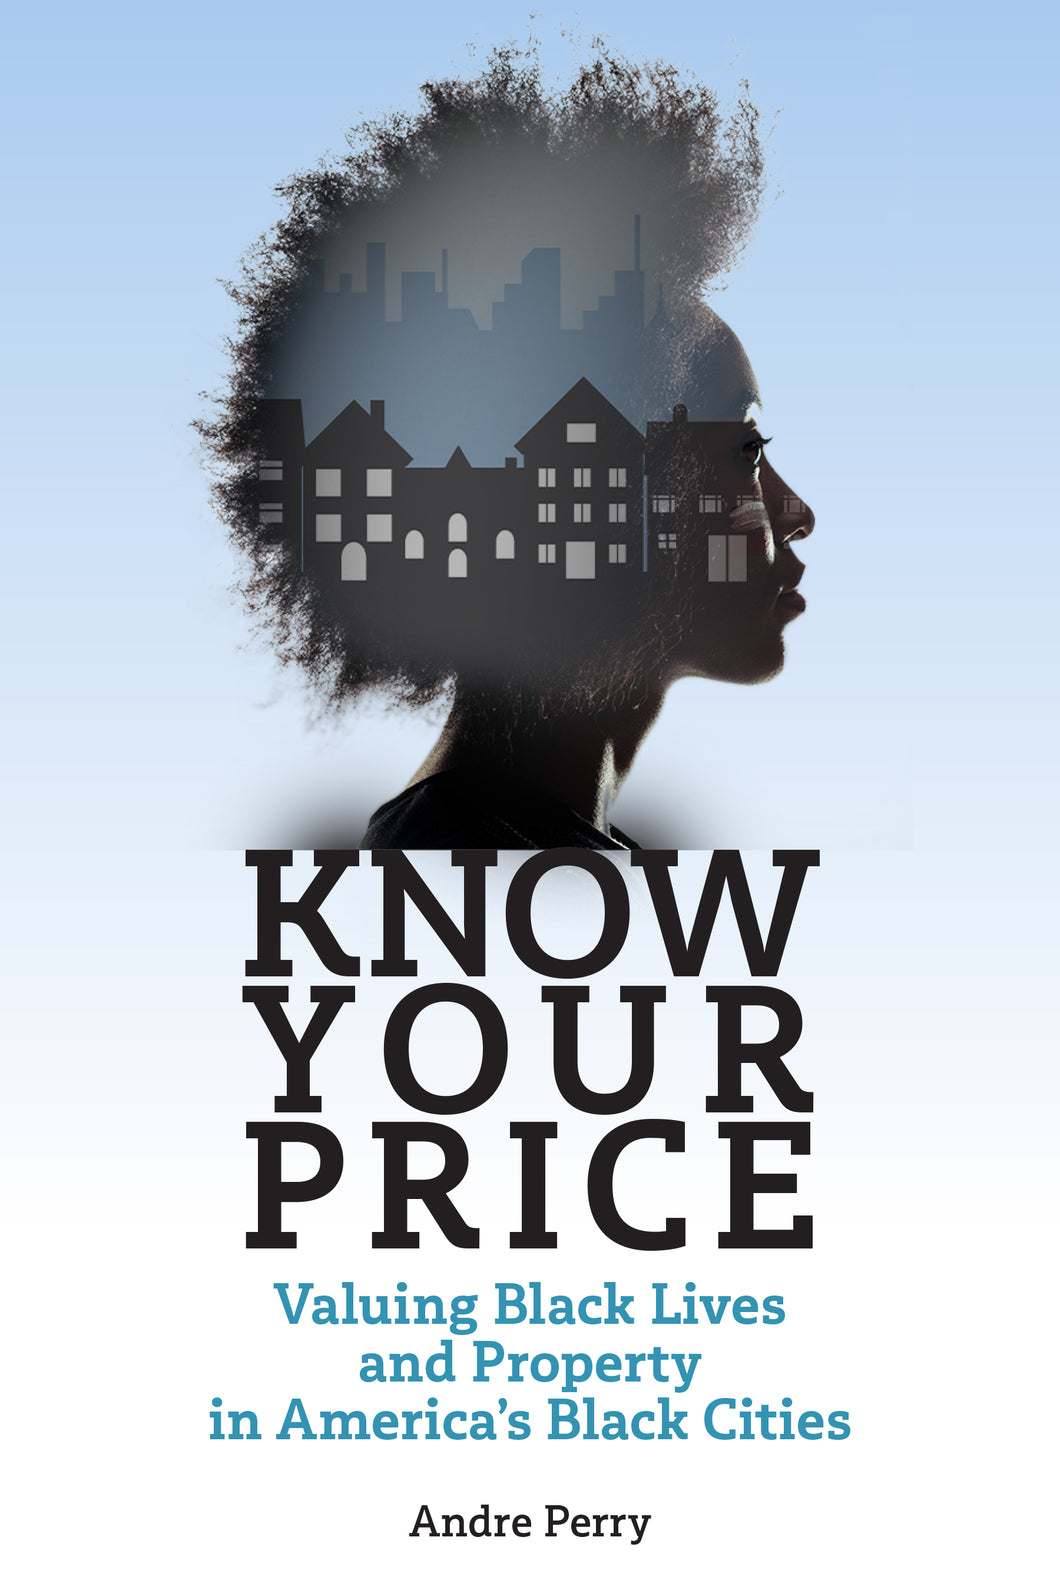 Know Your Price: Valuing Black Lives & Property in America's Black Cities by Andre M. Perry